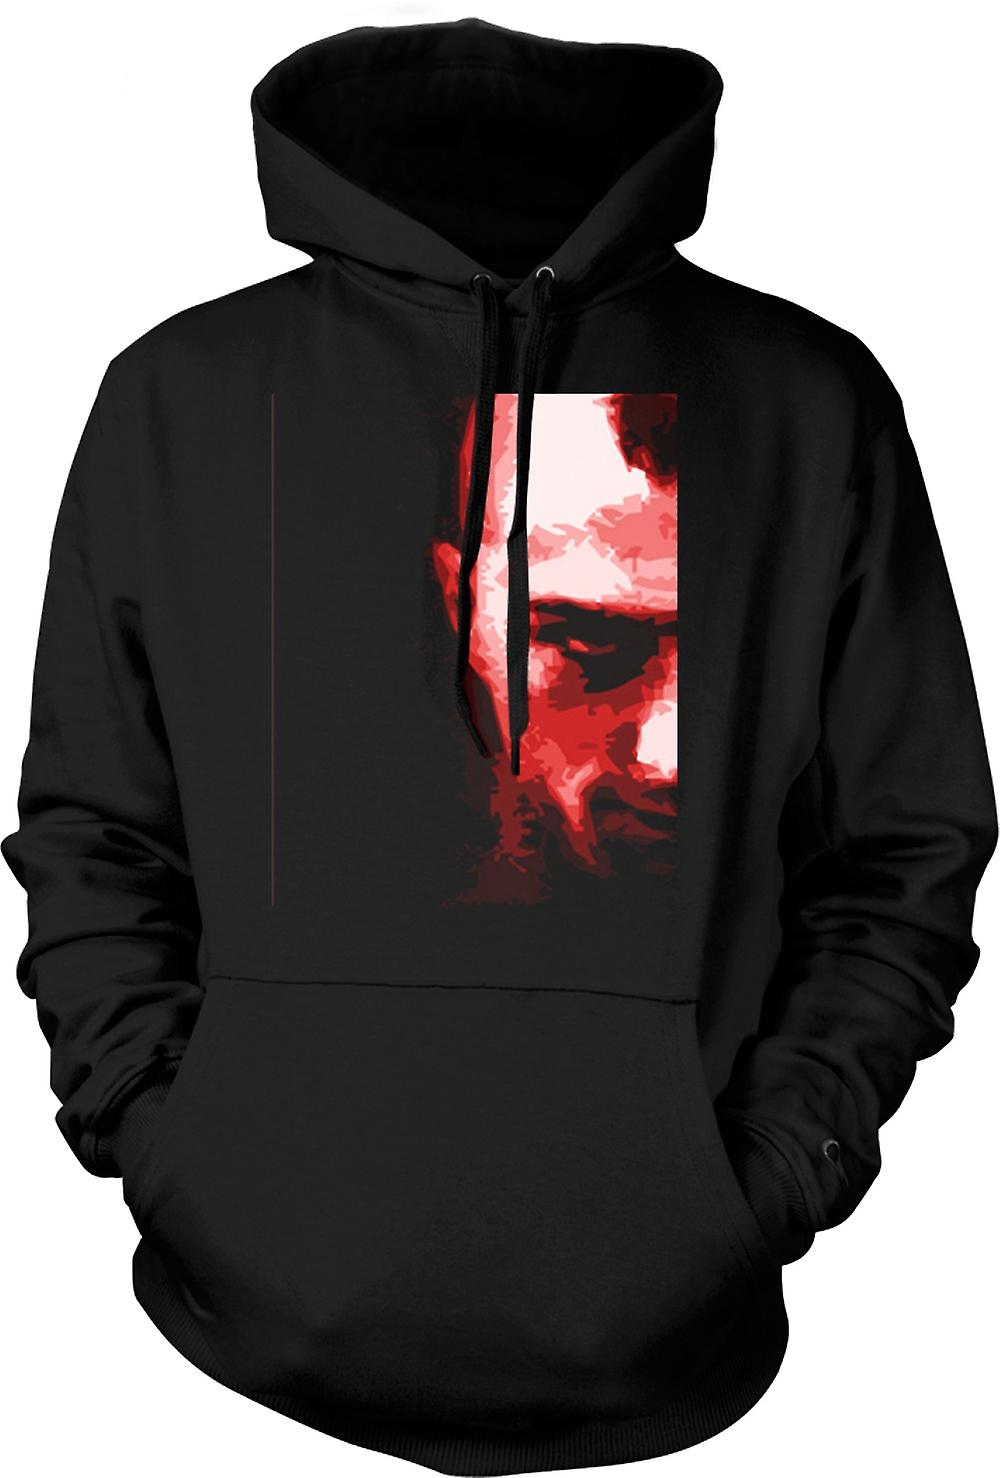 Mens Hoodie - Taxi Driver - Travis Bickle - Pop Art